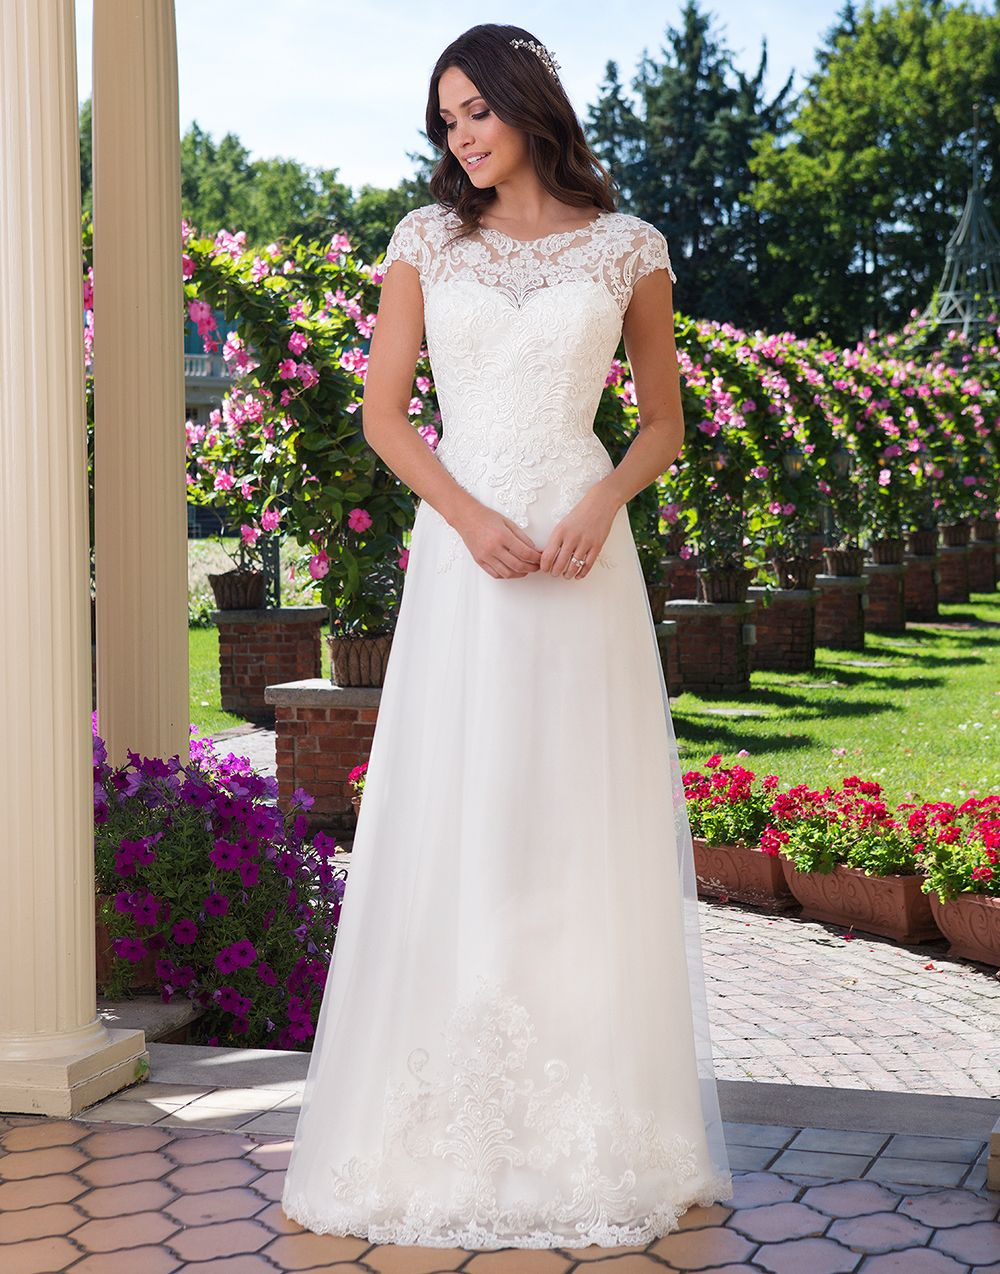 wedding dress New Bridal Gown Available at Ella Park Bridal Newburgh IN